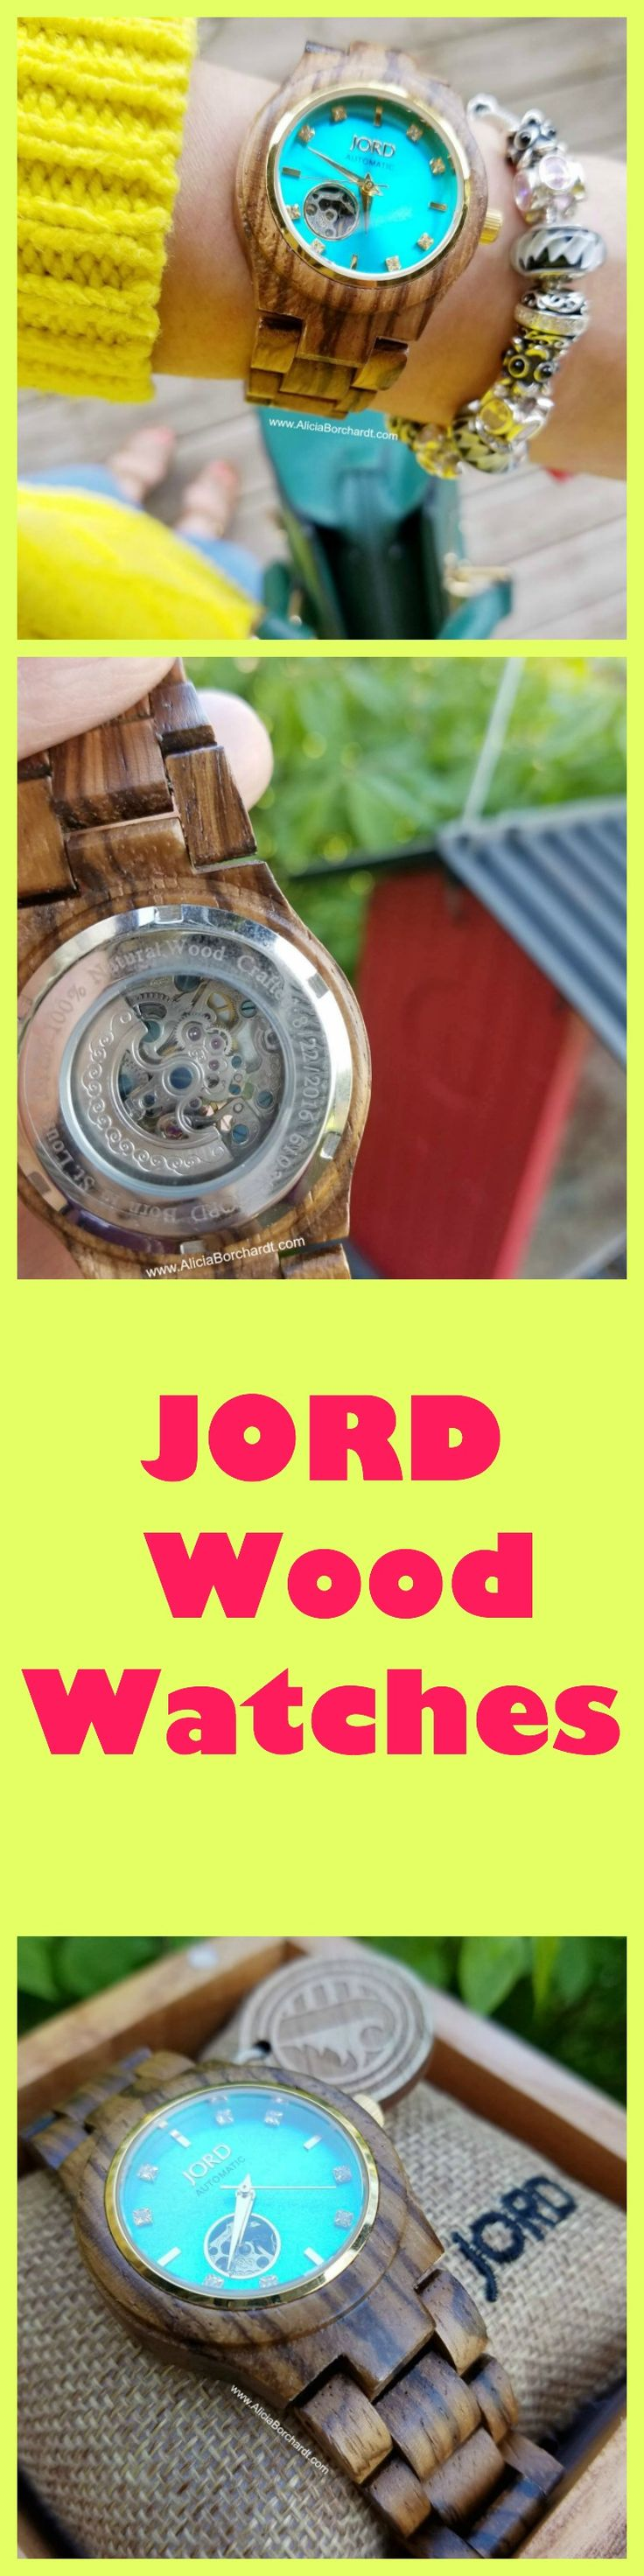 JORD Wood Watches is run by artists, designers, marketers, and minders. The value of a watch is not in being able to tell how much time has passed, but in being aware of the need to make that time count. Moments are bigger than minutes and your watch should tell more than time.